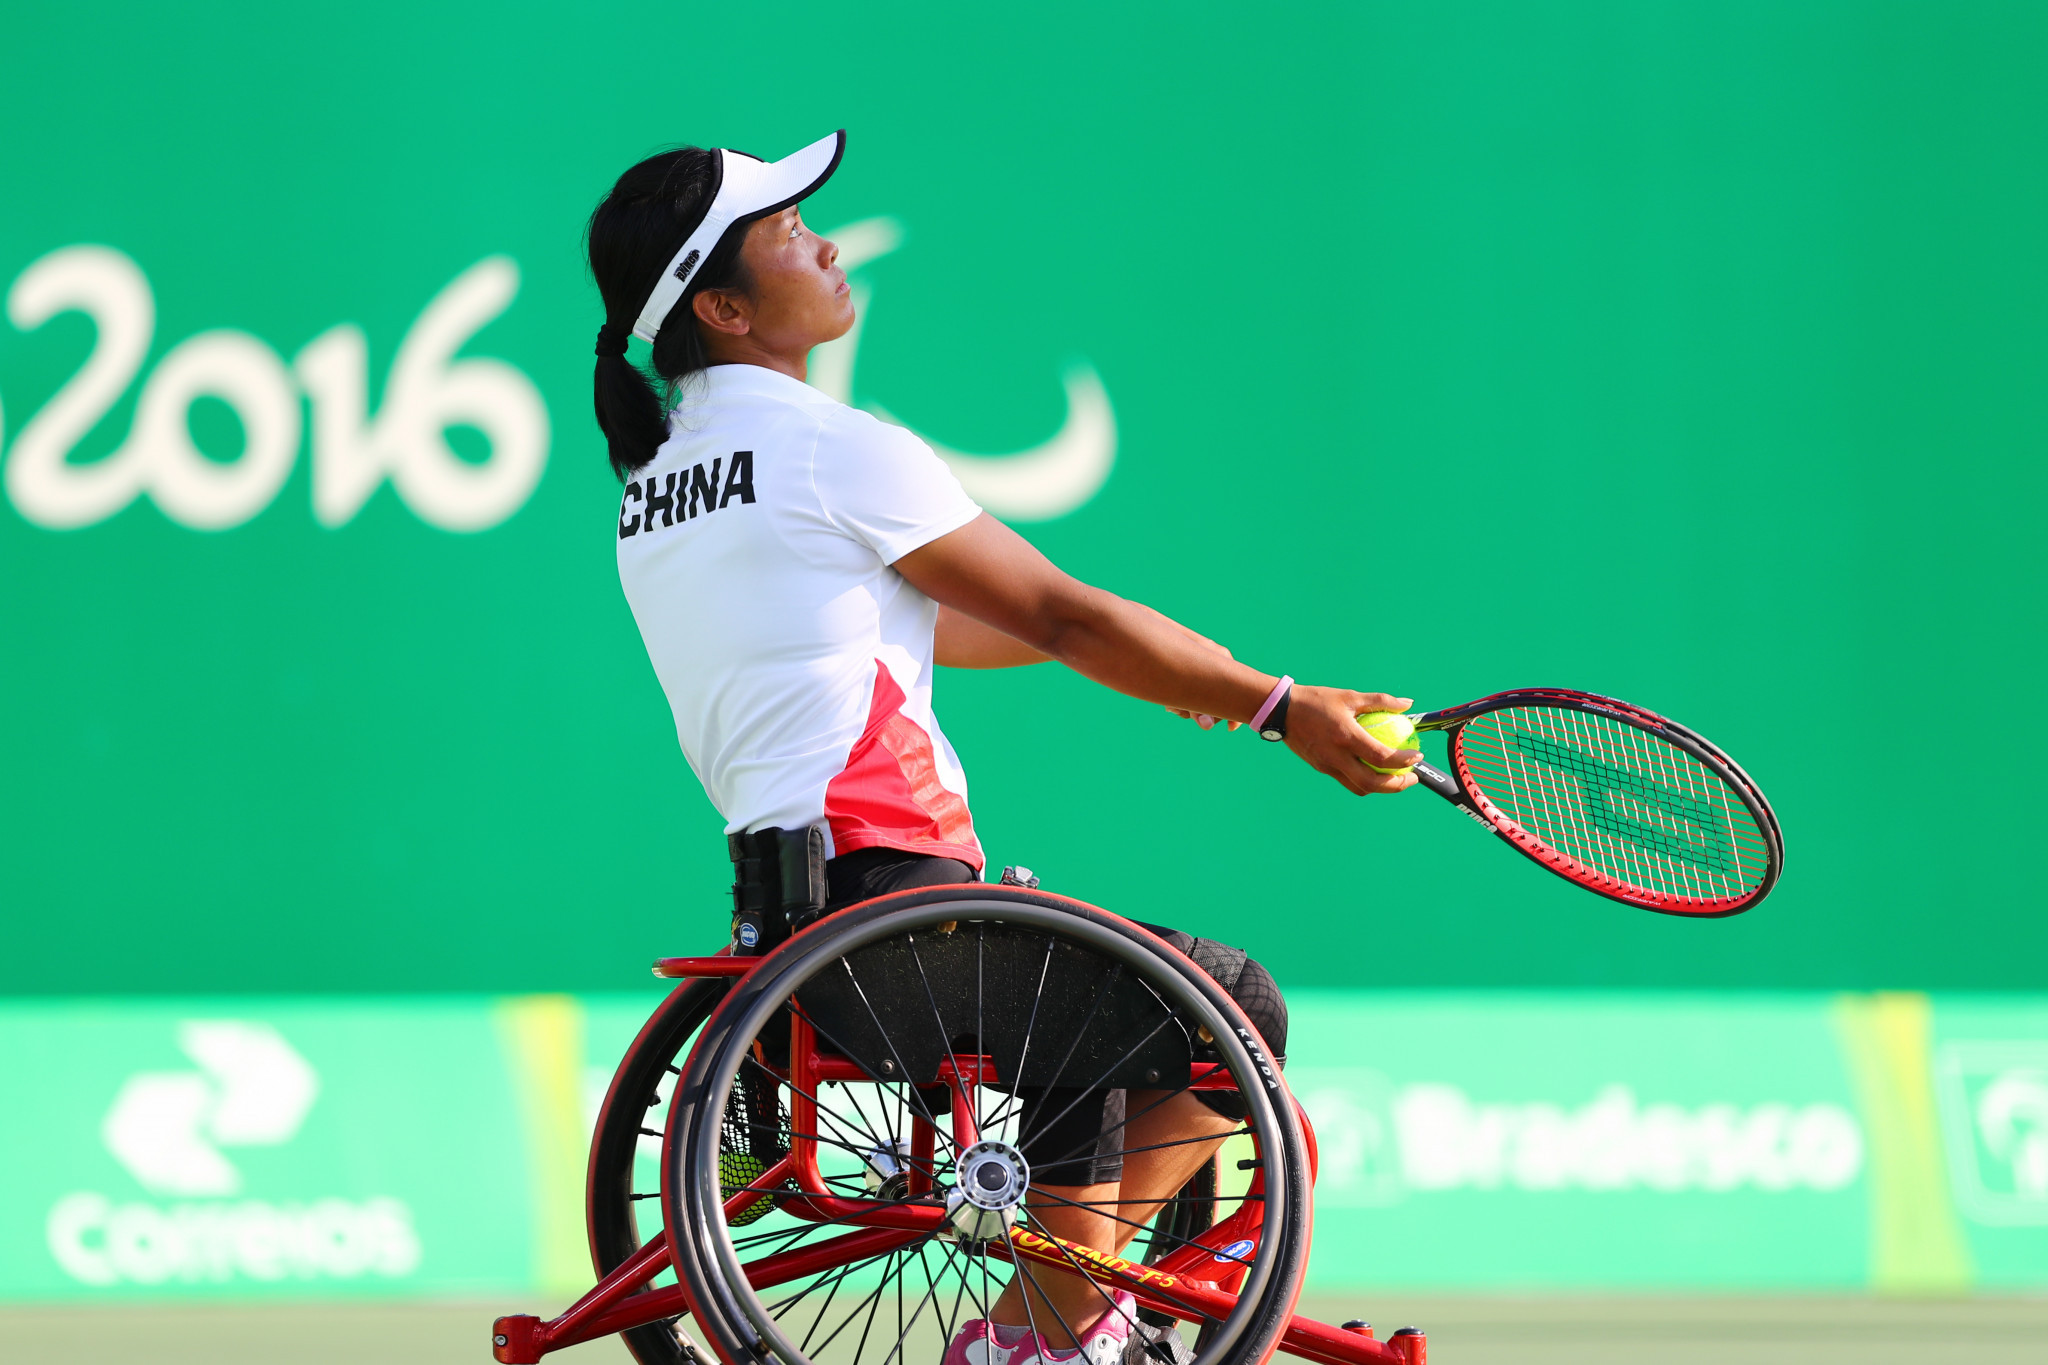 Zhenzhen Zhu appeared at the Rio 2016 Paralympic Games ©Getty Images